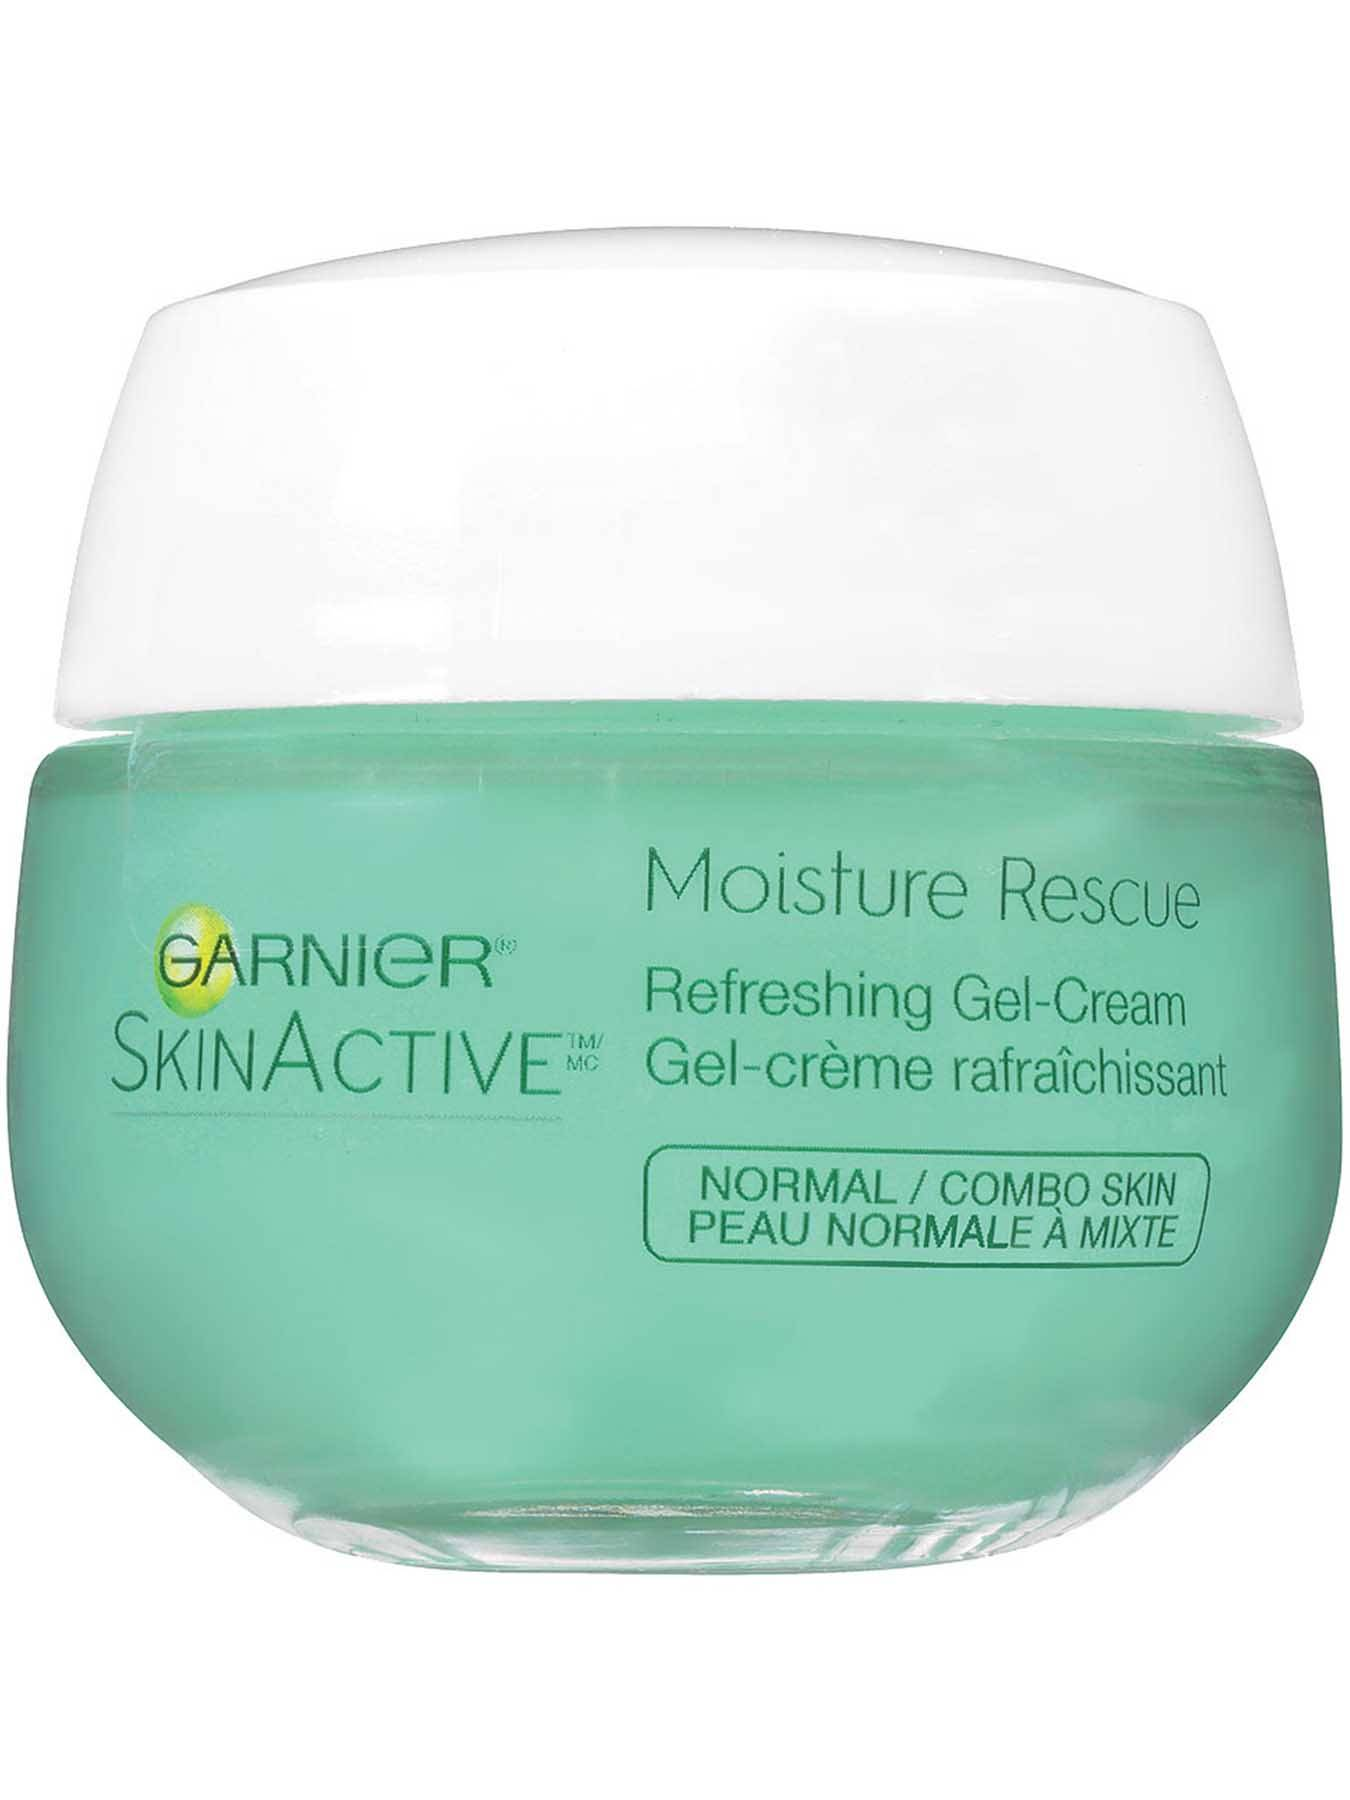 Garnier Moisture Rescue Reviews | Skincare.com